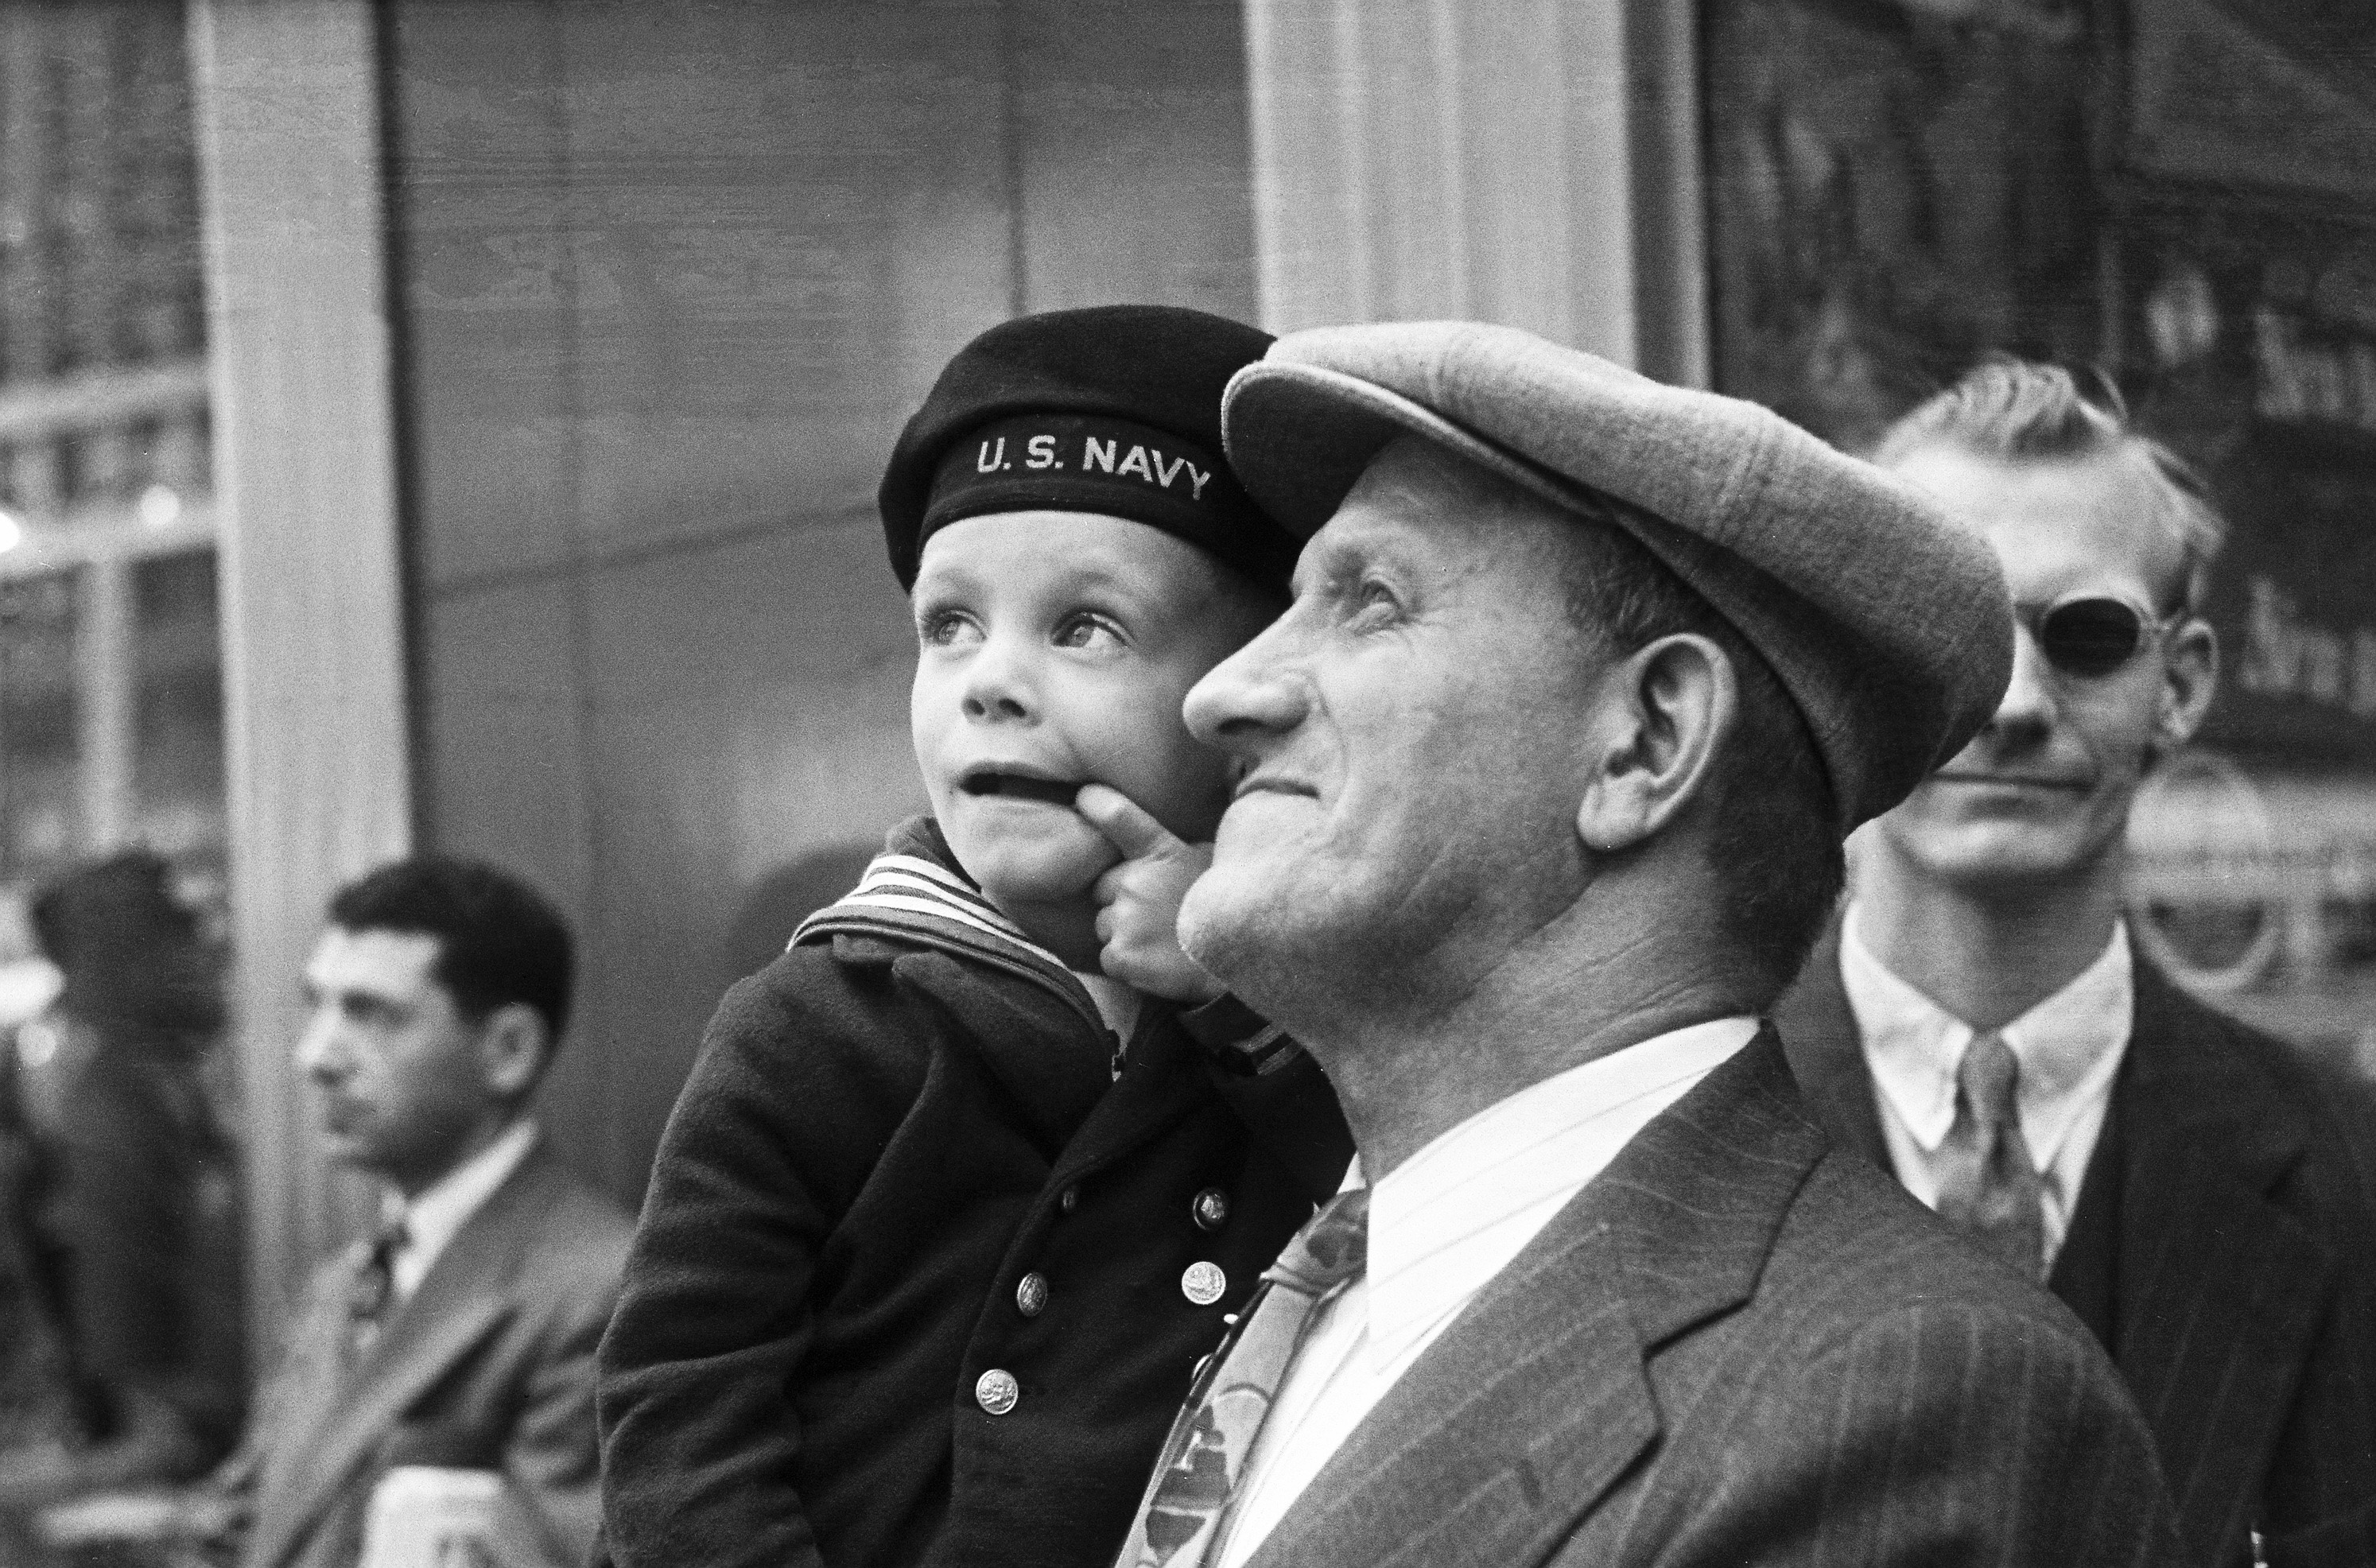 Scenes from D-Day in New York City, June 6 1944.